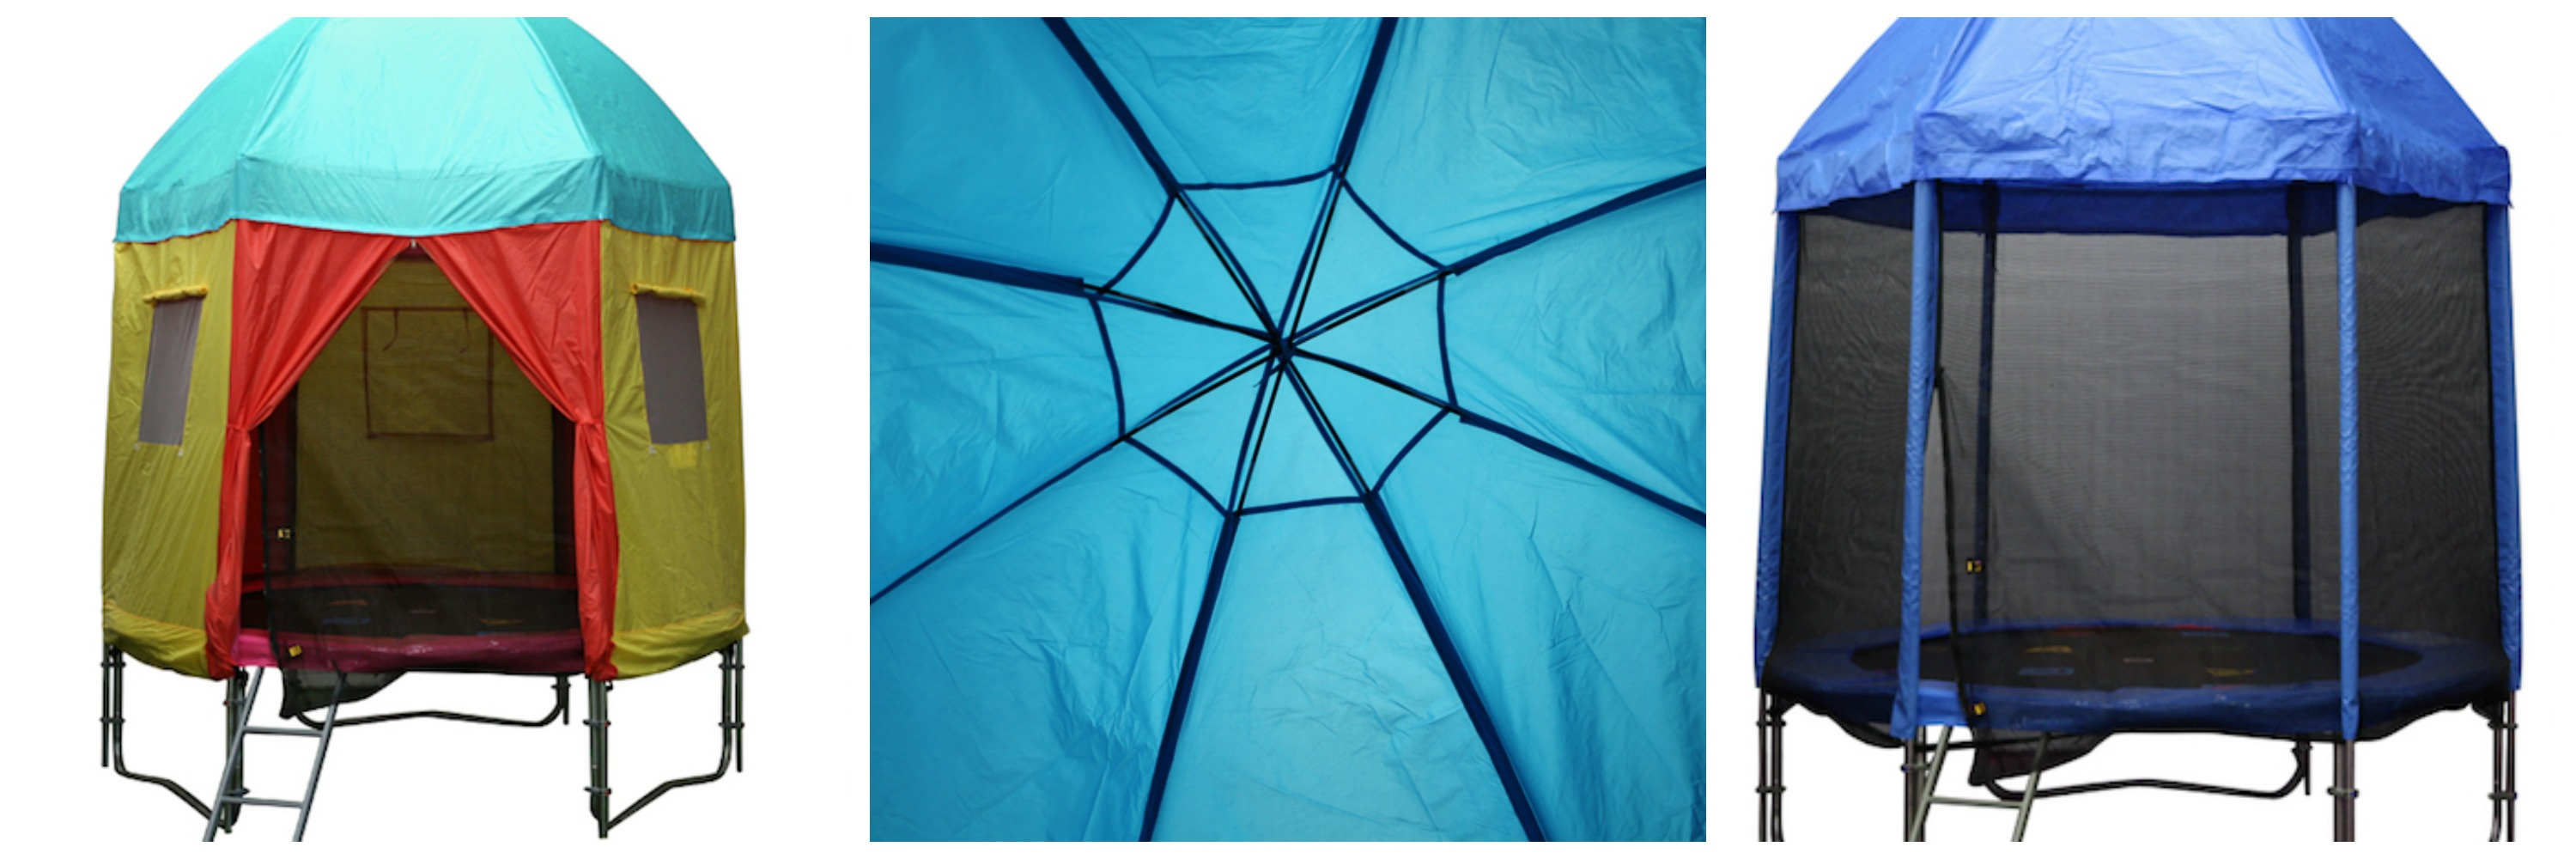 Why We Donu0027t Make 16ft Tr‾ Roofs and Tents & Why We Donu0027t Make 16ft Trampoline Roofs or Tents - Oz Trampolines Blog